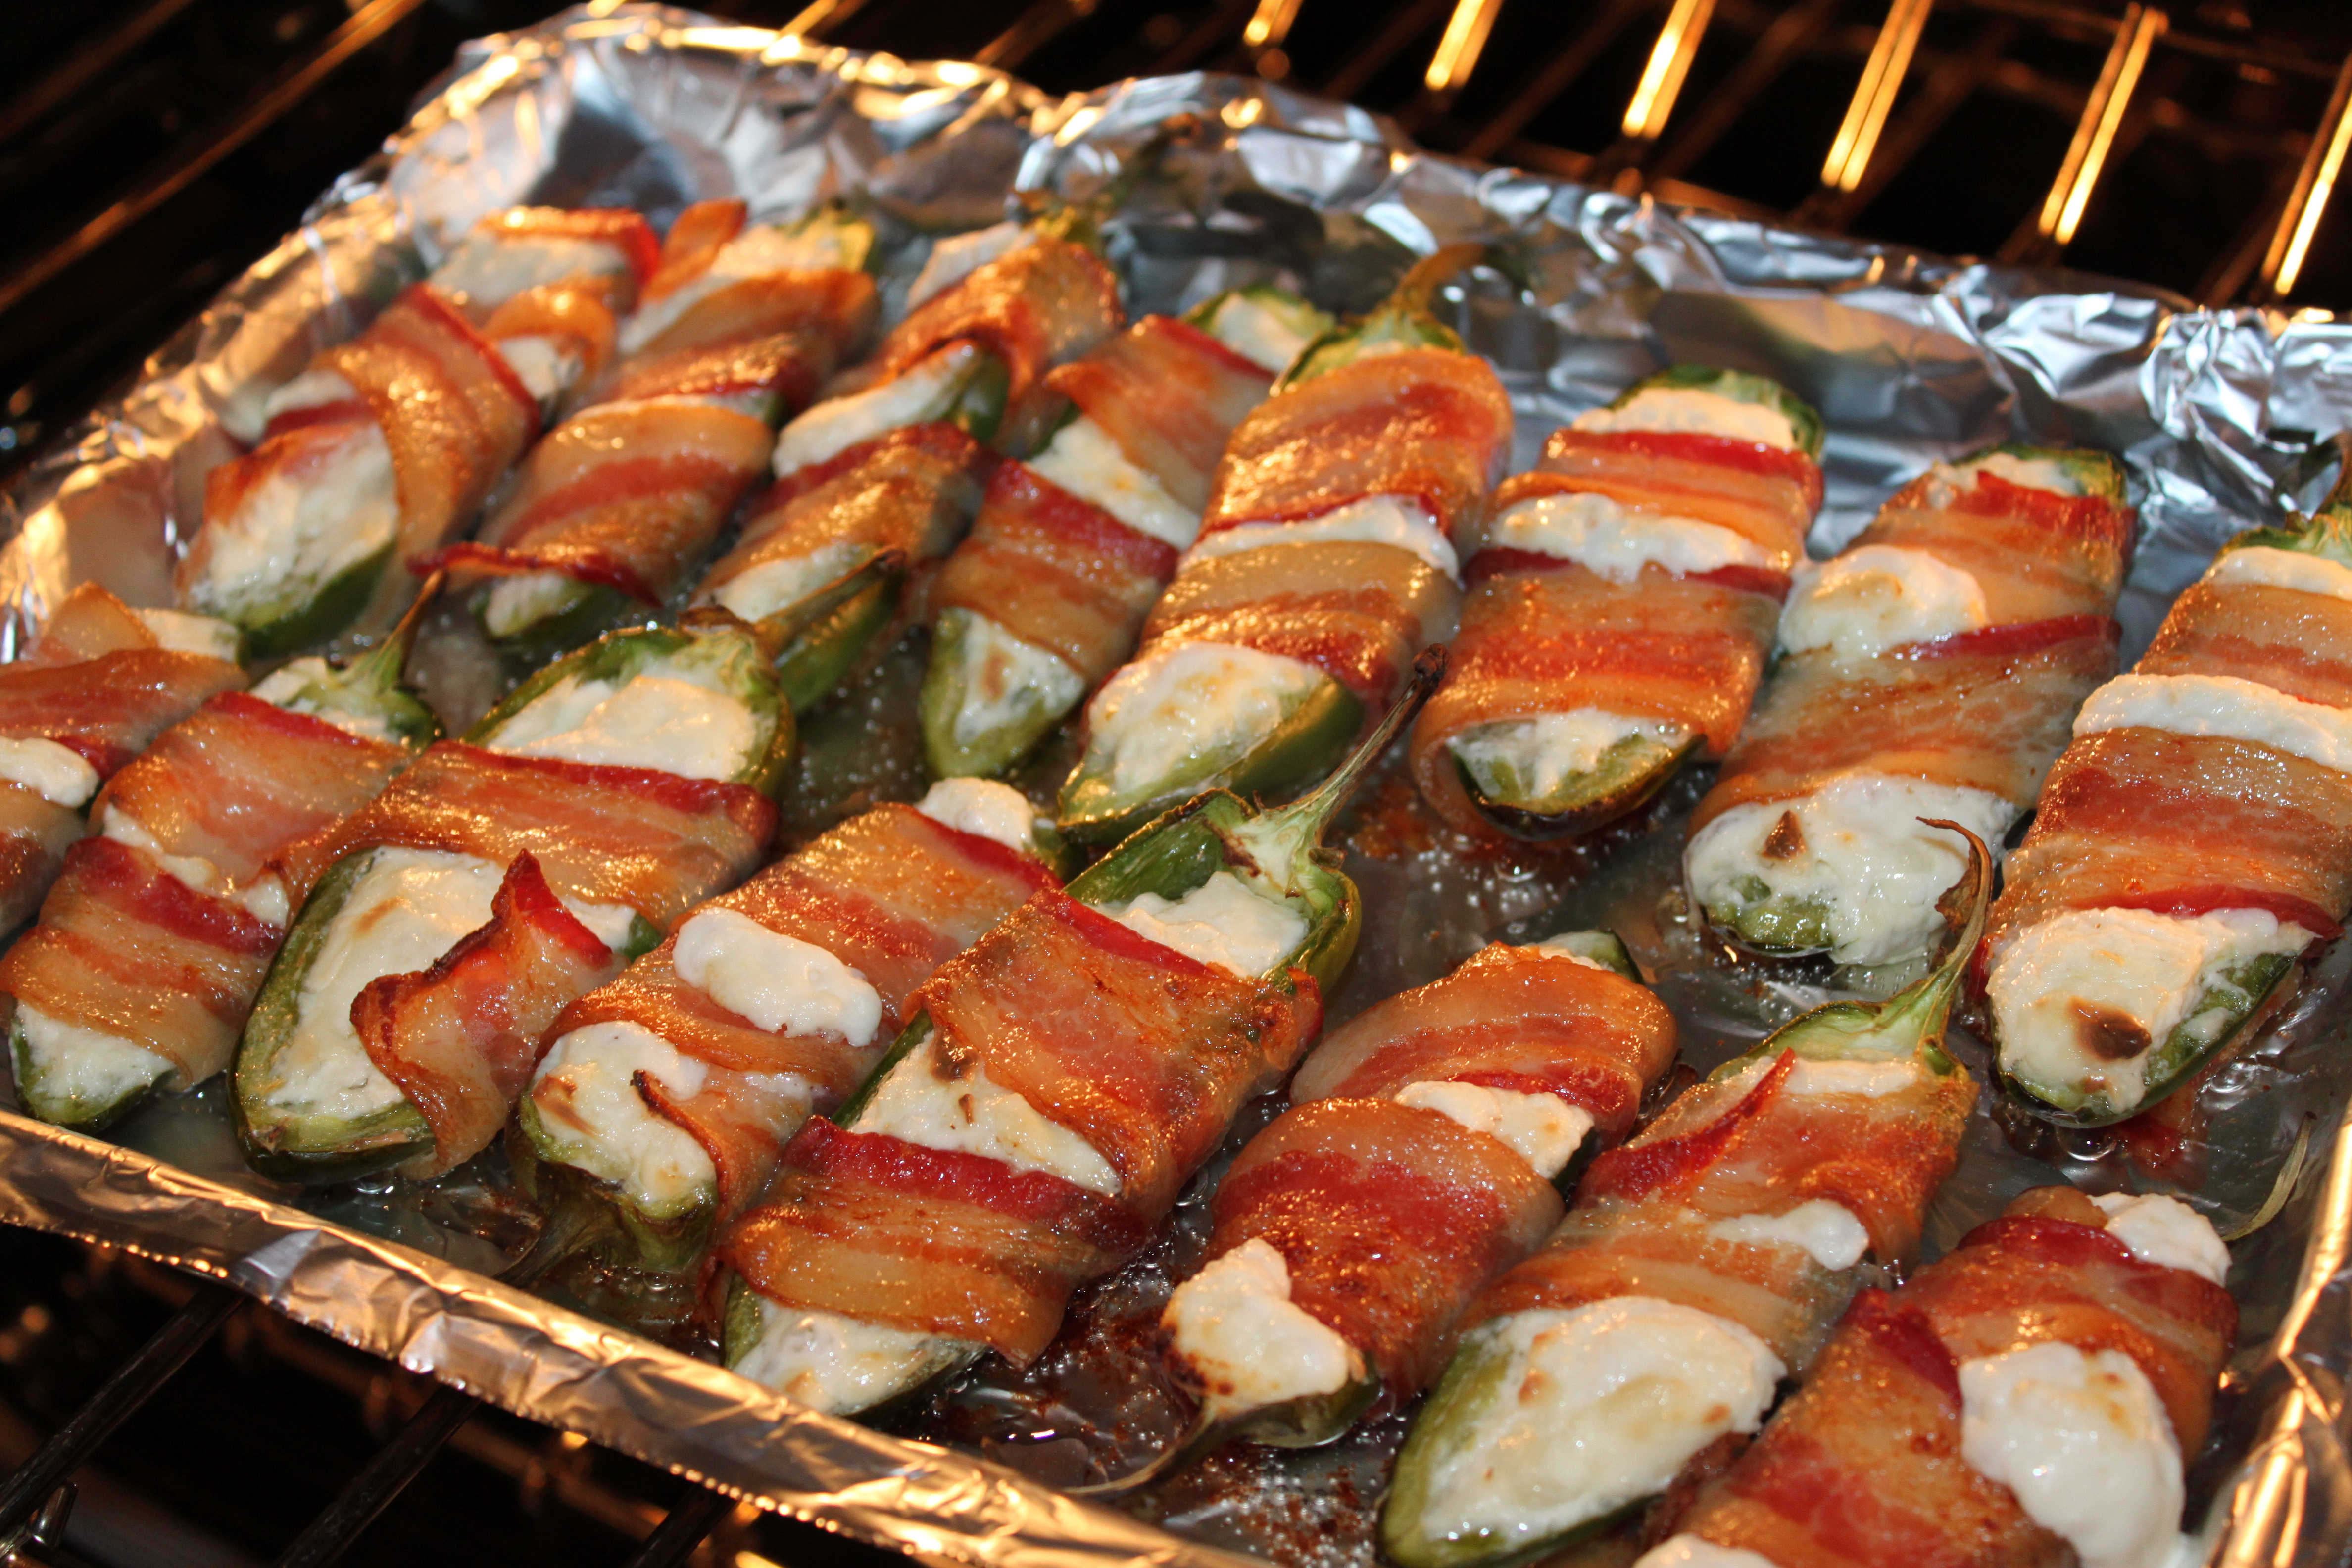 Jalapeno's In Oven